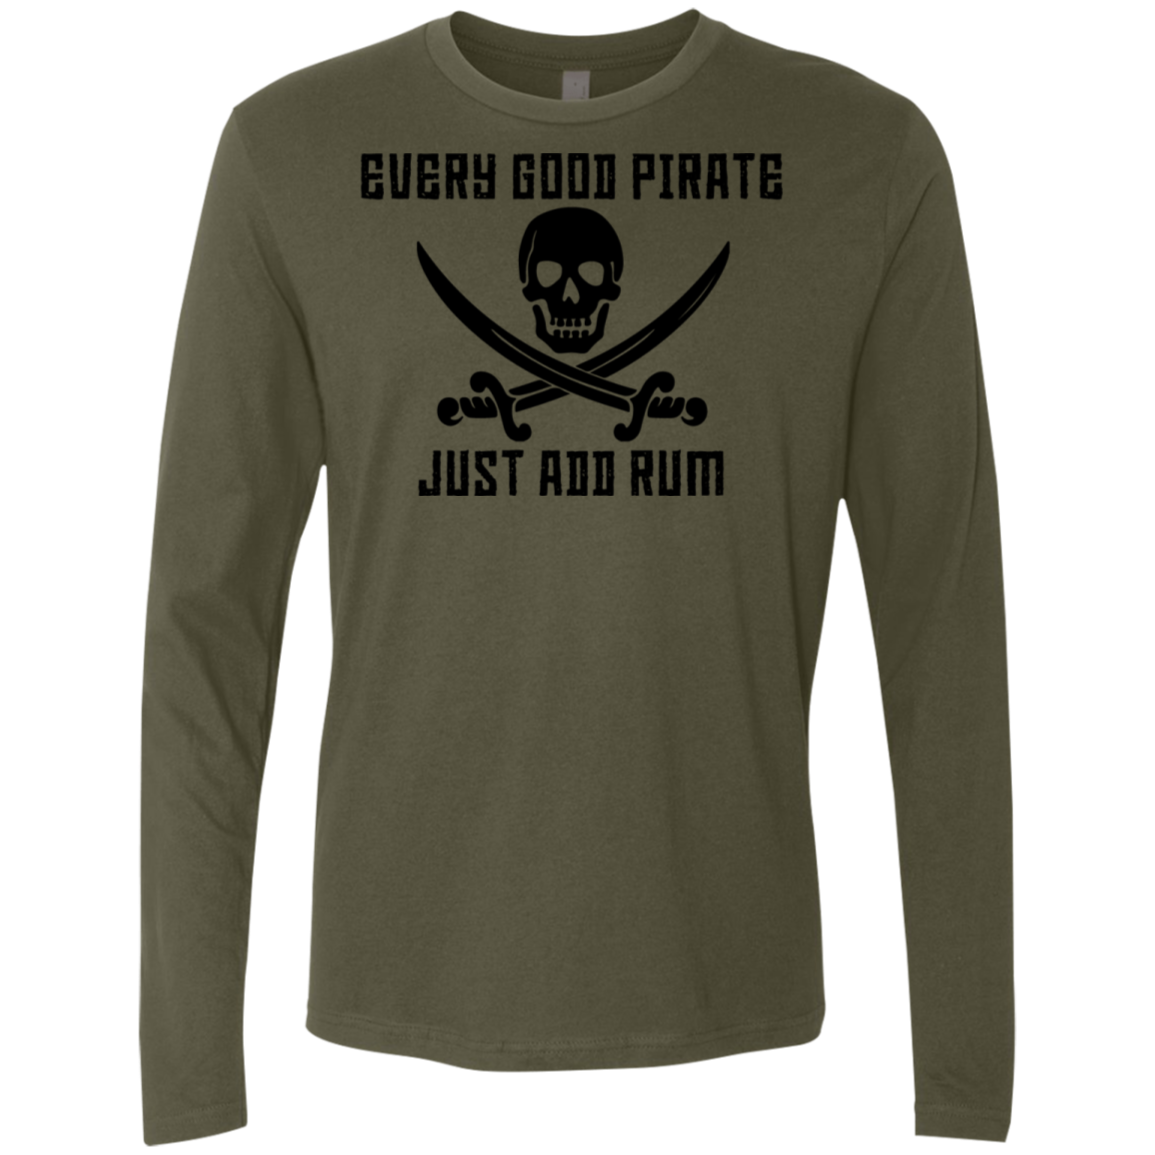 Every Good Pirate Just Add Rum Men's Long Sleeve Tee